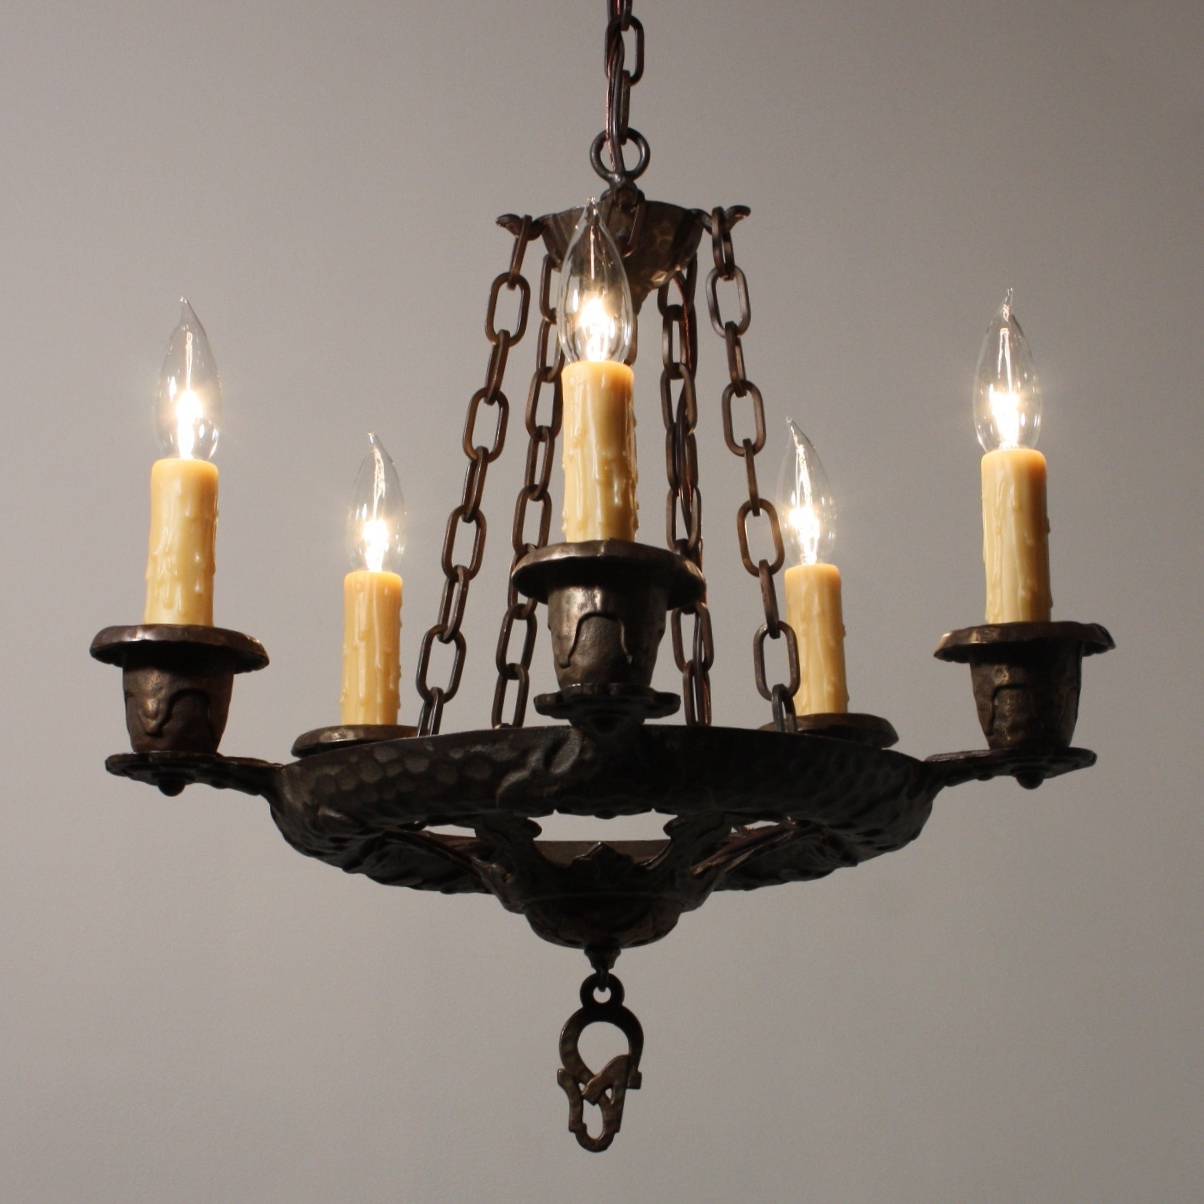 2019 Handsome Antique Five Light Tudor Chandelier, Cast Iron, Nc1650 Rw Throughout Cast Iron Chandelier (View 3 of 20)